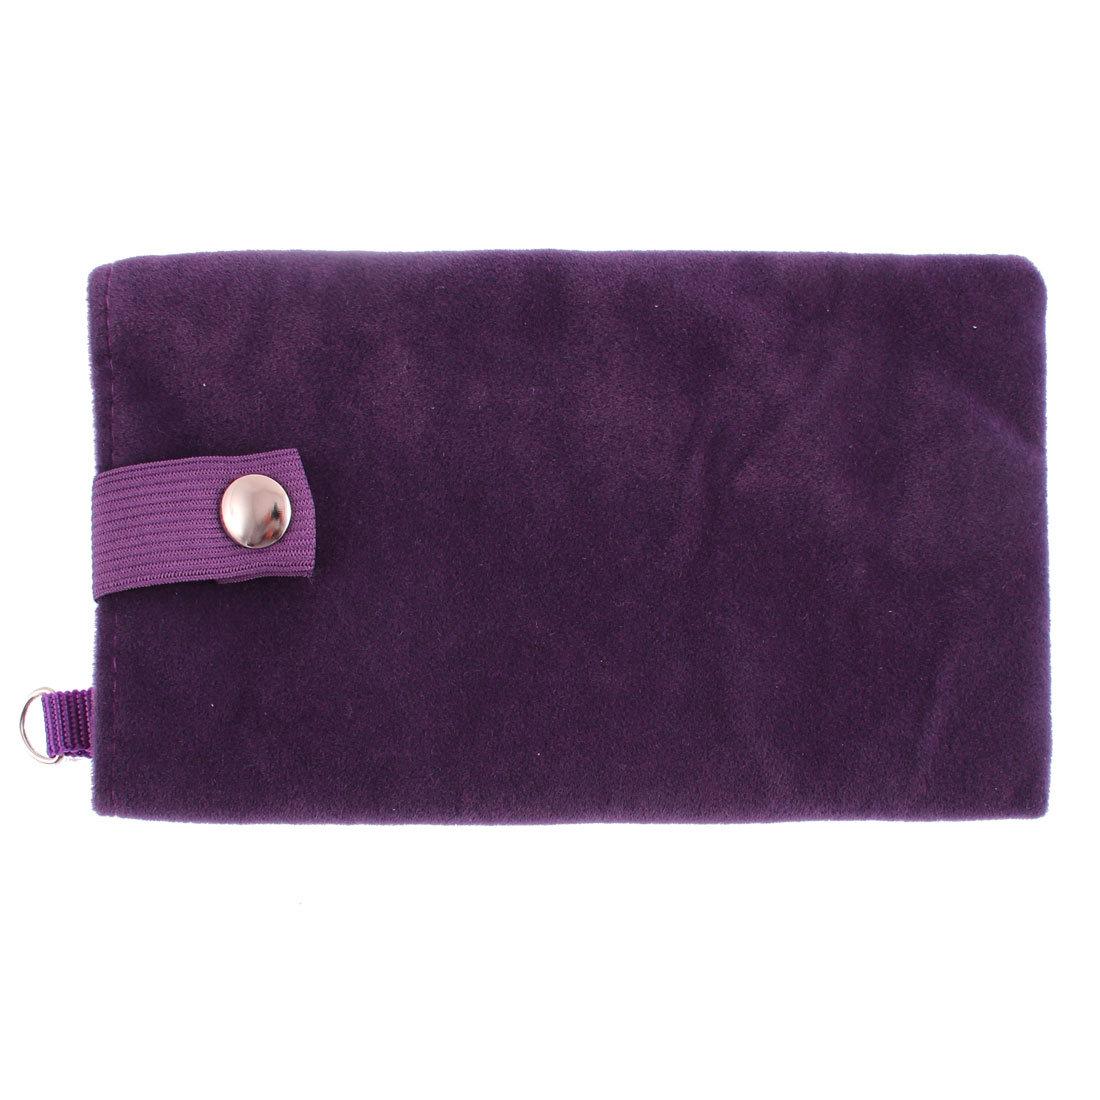 Velvet Magnetic Clasp Button Cell Phone Pouch Sleeve Bag Dark Purple 16x9.5cm